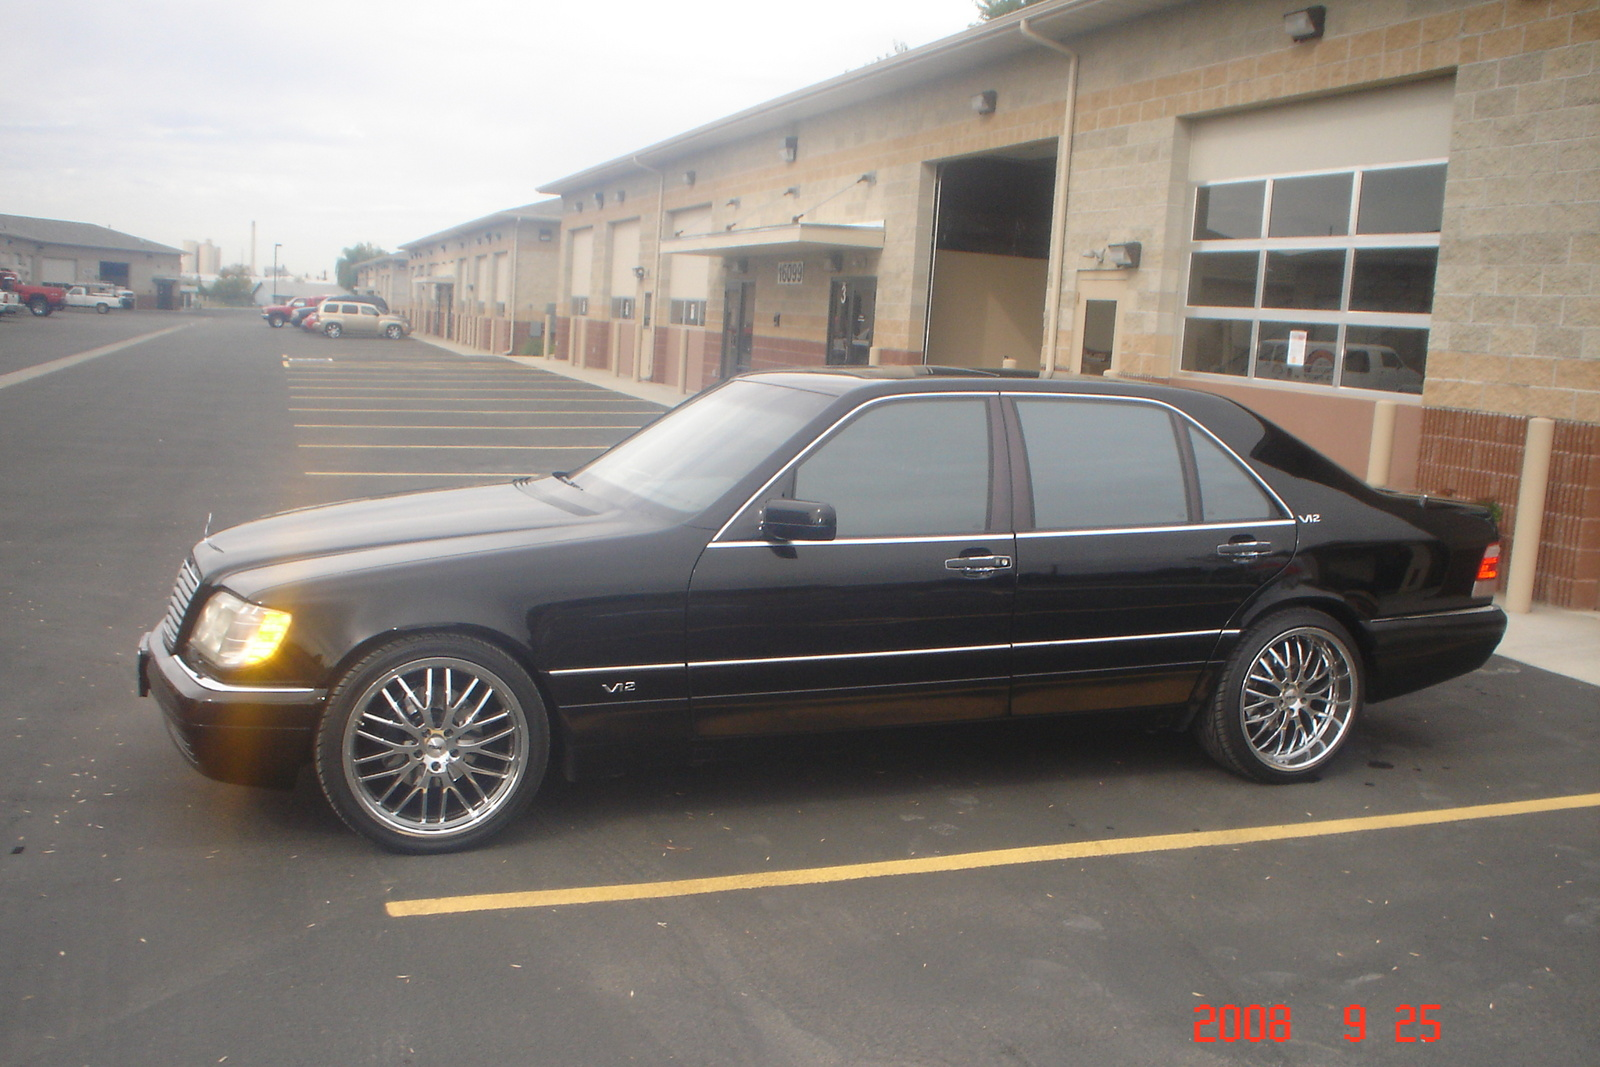 1998 mercedes benz s class pictures cargurus for 2002 mercedes benz s600 v12 for sale